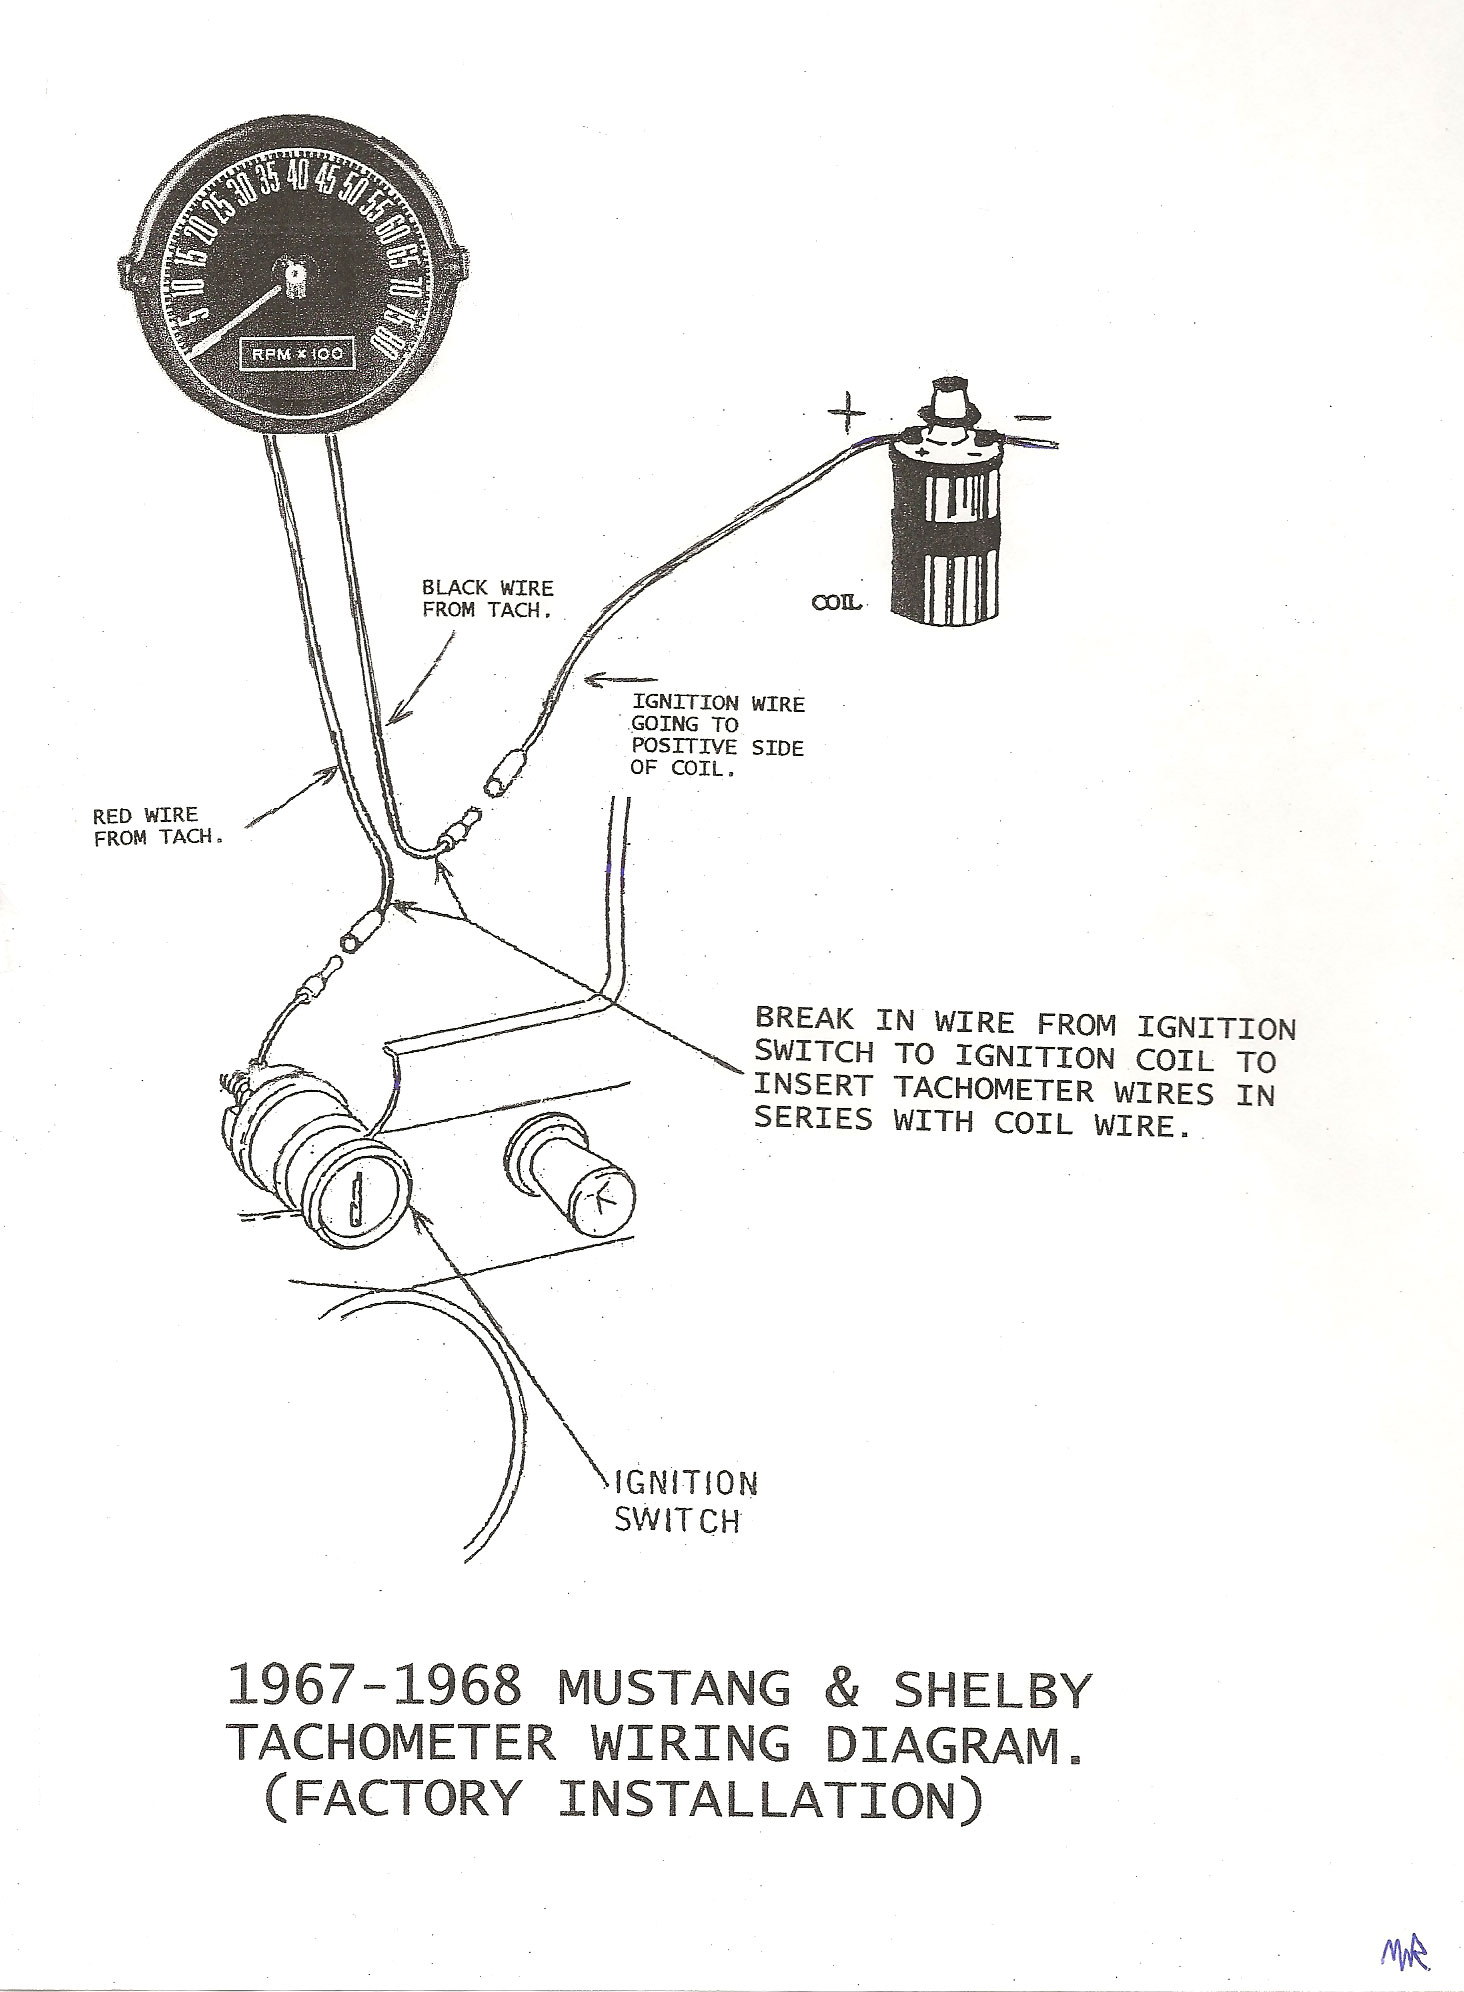 1968 Mustang Wiring Diagram For Solenoid Tech Info 1967 68 Shelby Factory Tach Jpeg Image